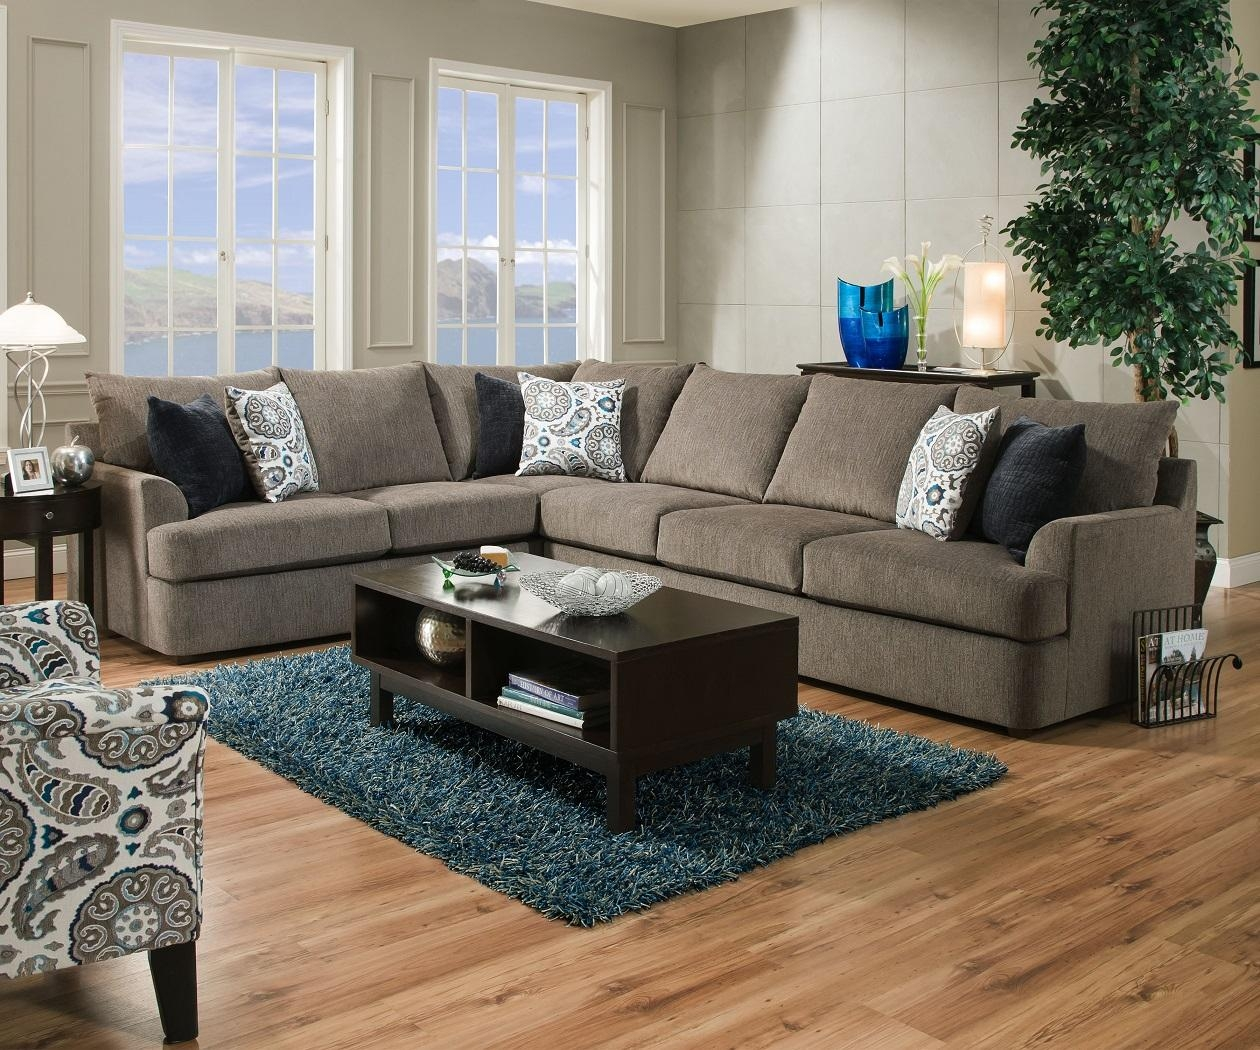 United Simmons Grandstand 8540 Beautyrest Grey Sectional Sofa with Simmons Sectional Sofas